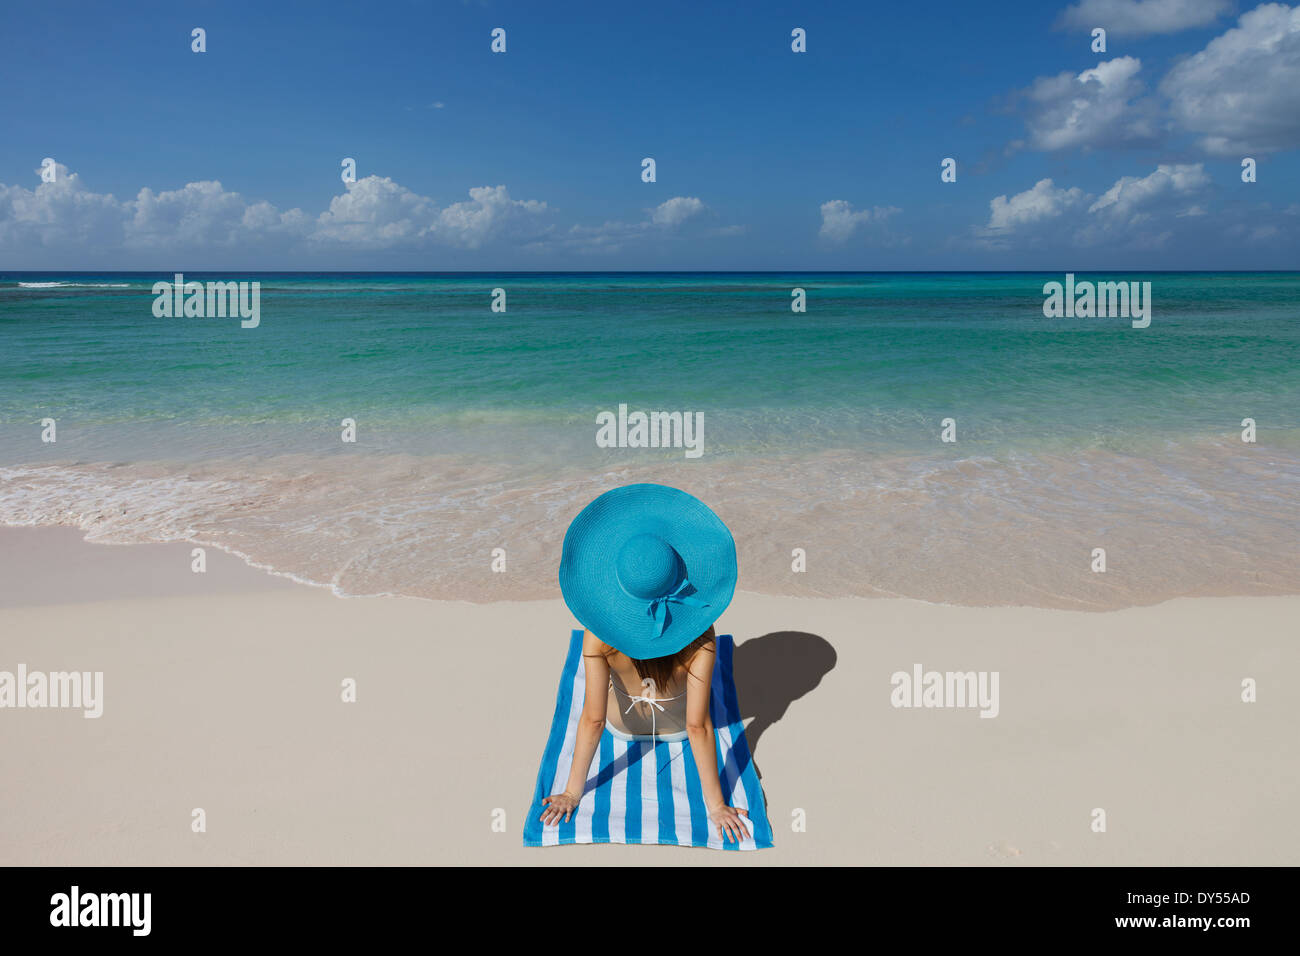 Young woman relaxing on beach with blue sunhat - Stock Image